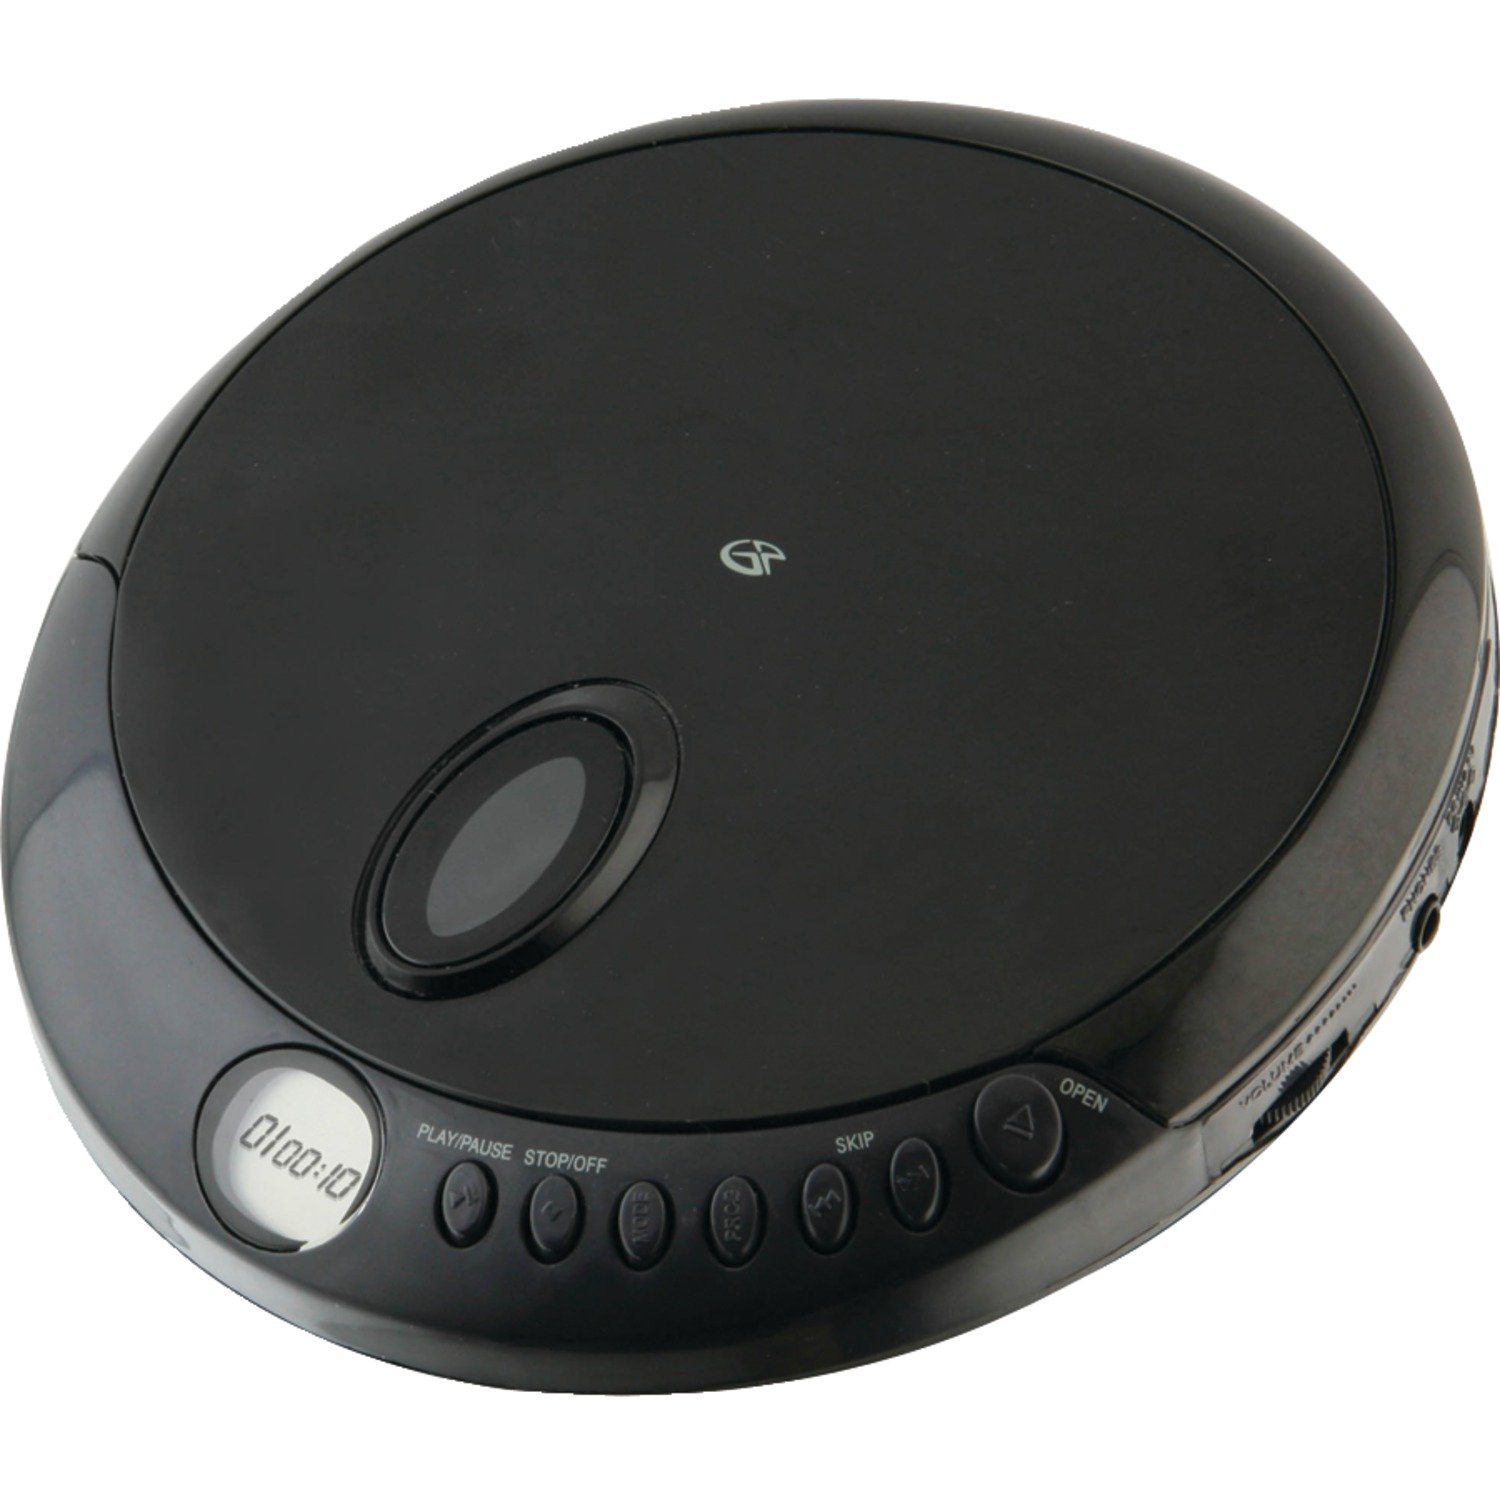 gpx pc301b portable cd player with stereo earbuds and anti. Black Bedroom Furniture Sets. Home Design Ideas